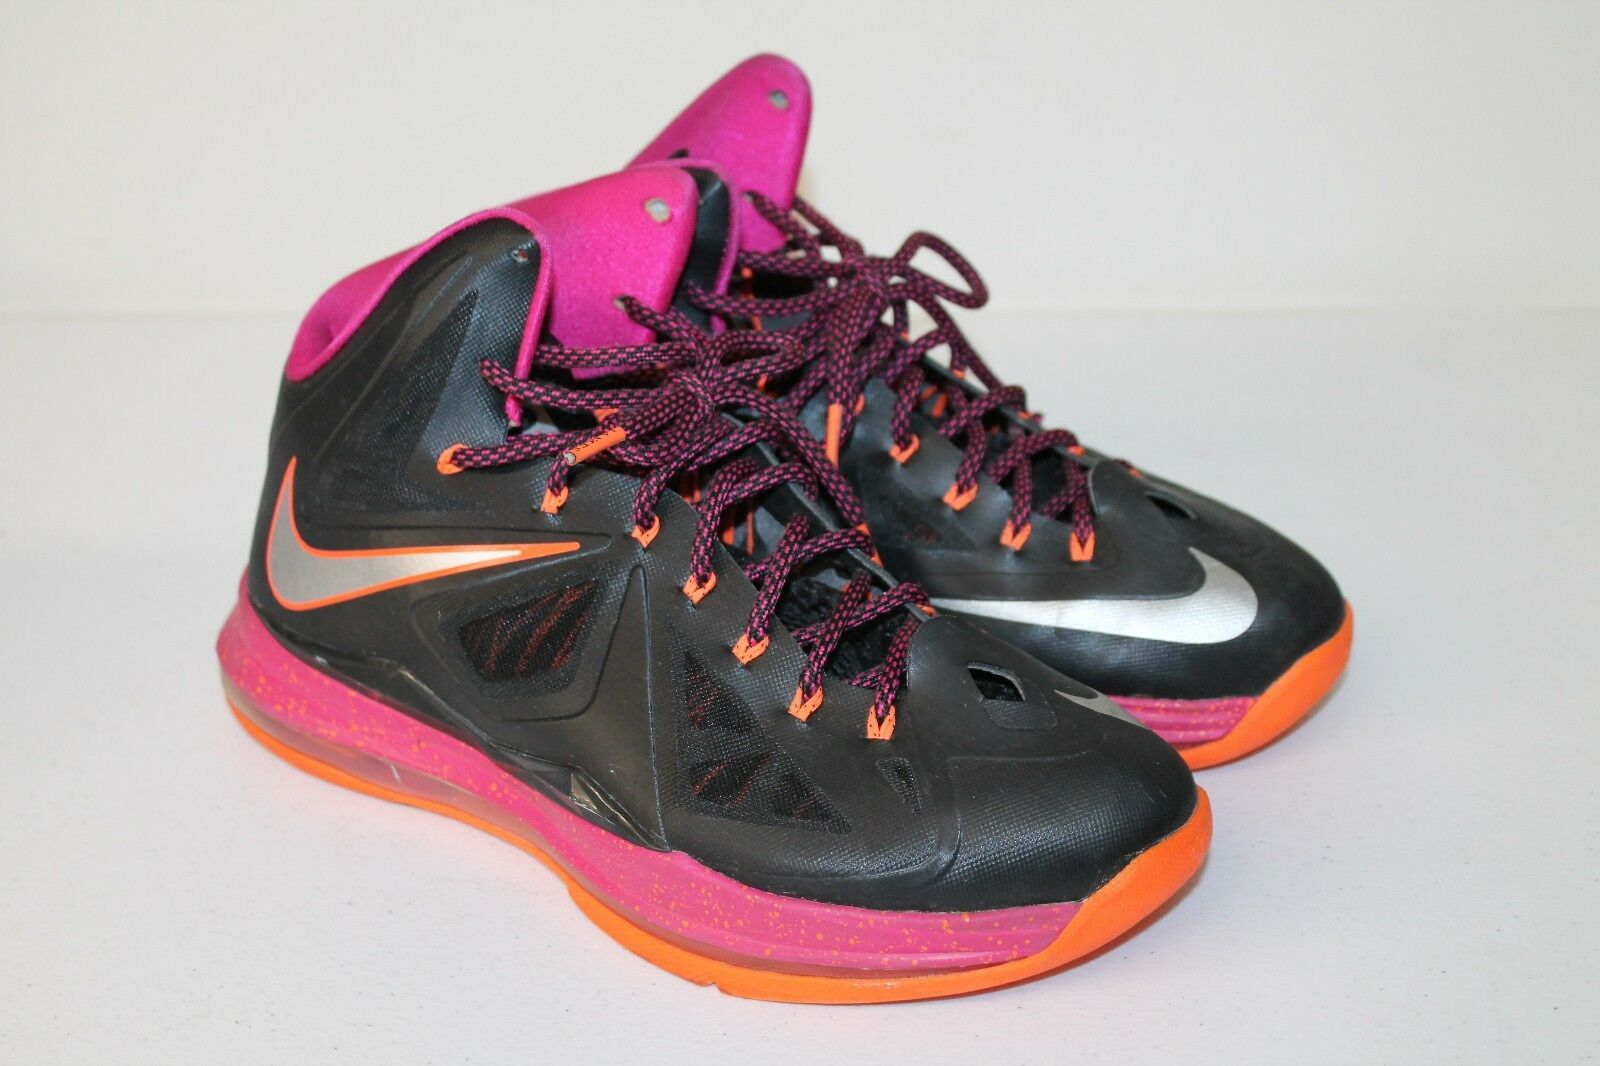 Nike LeBron 541100 005 Fireberry Orange Black Silver Mens 10